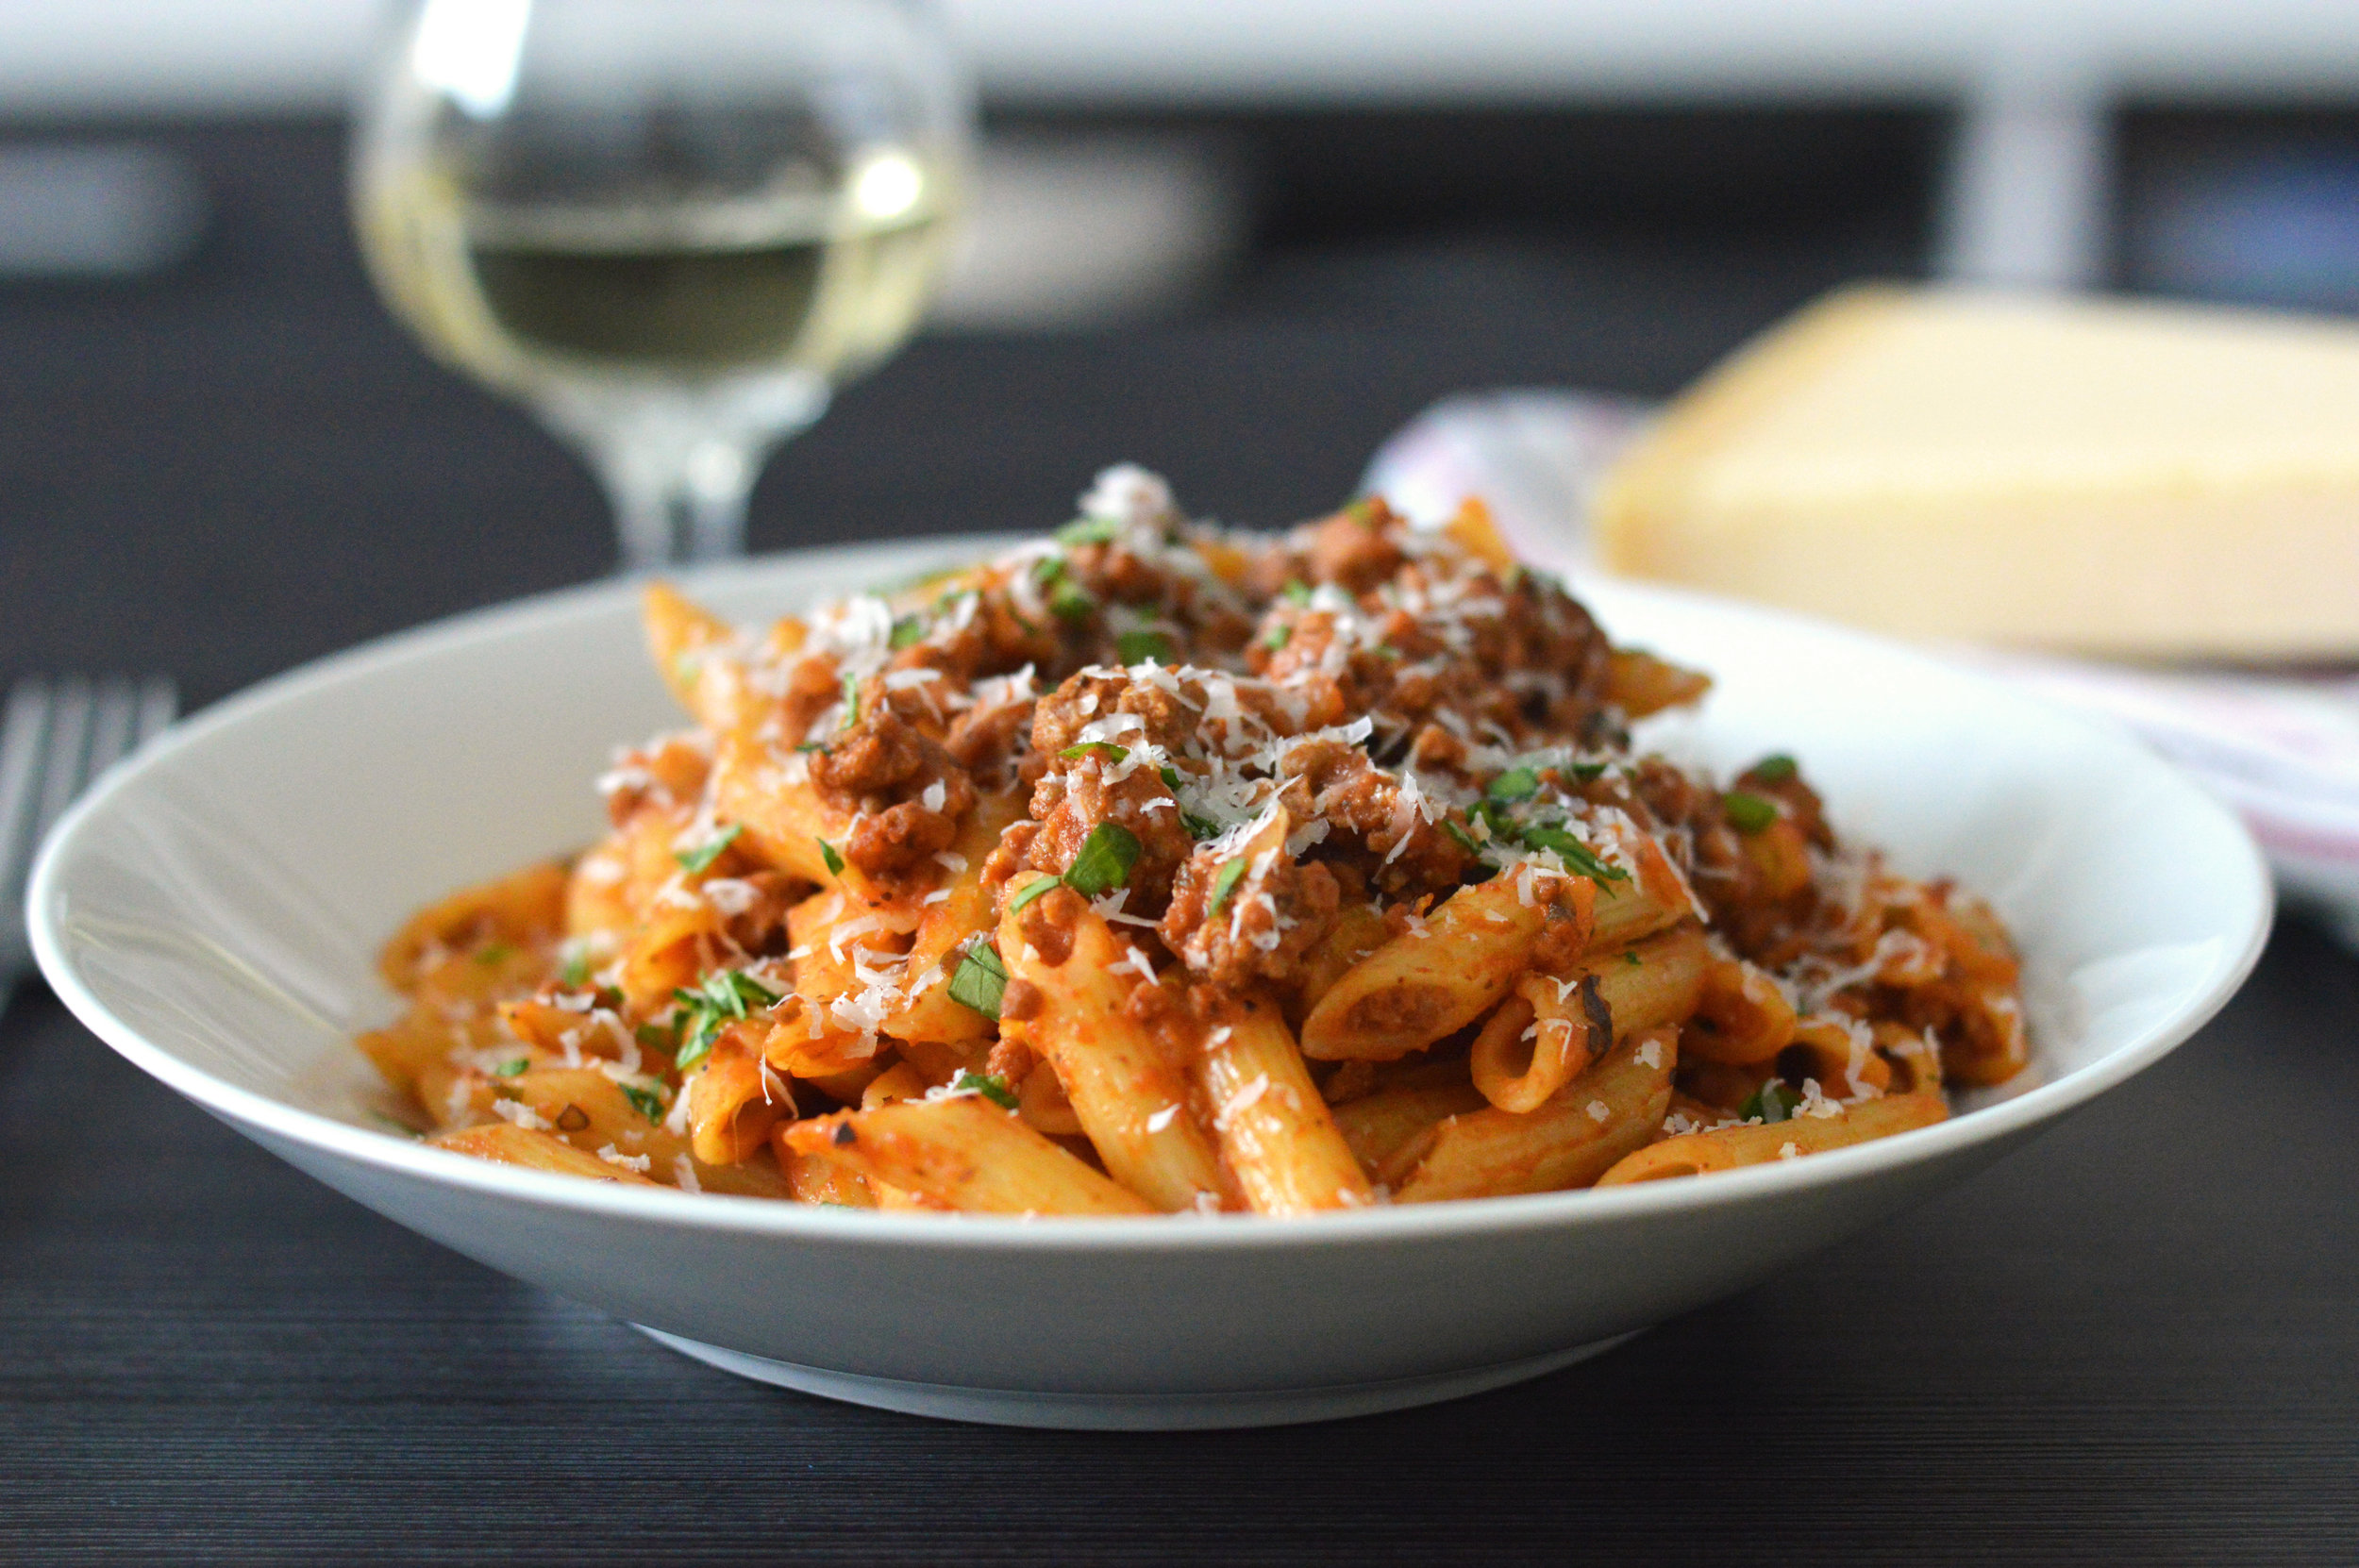 Italian Sausage Pasta - This simple recipe is delicious and hearty, making it a great option for dinners for the upcoming cold weather. This recipe also pairs very well with wine and can easily be made in larger batches for large dinners.